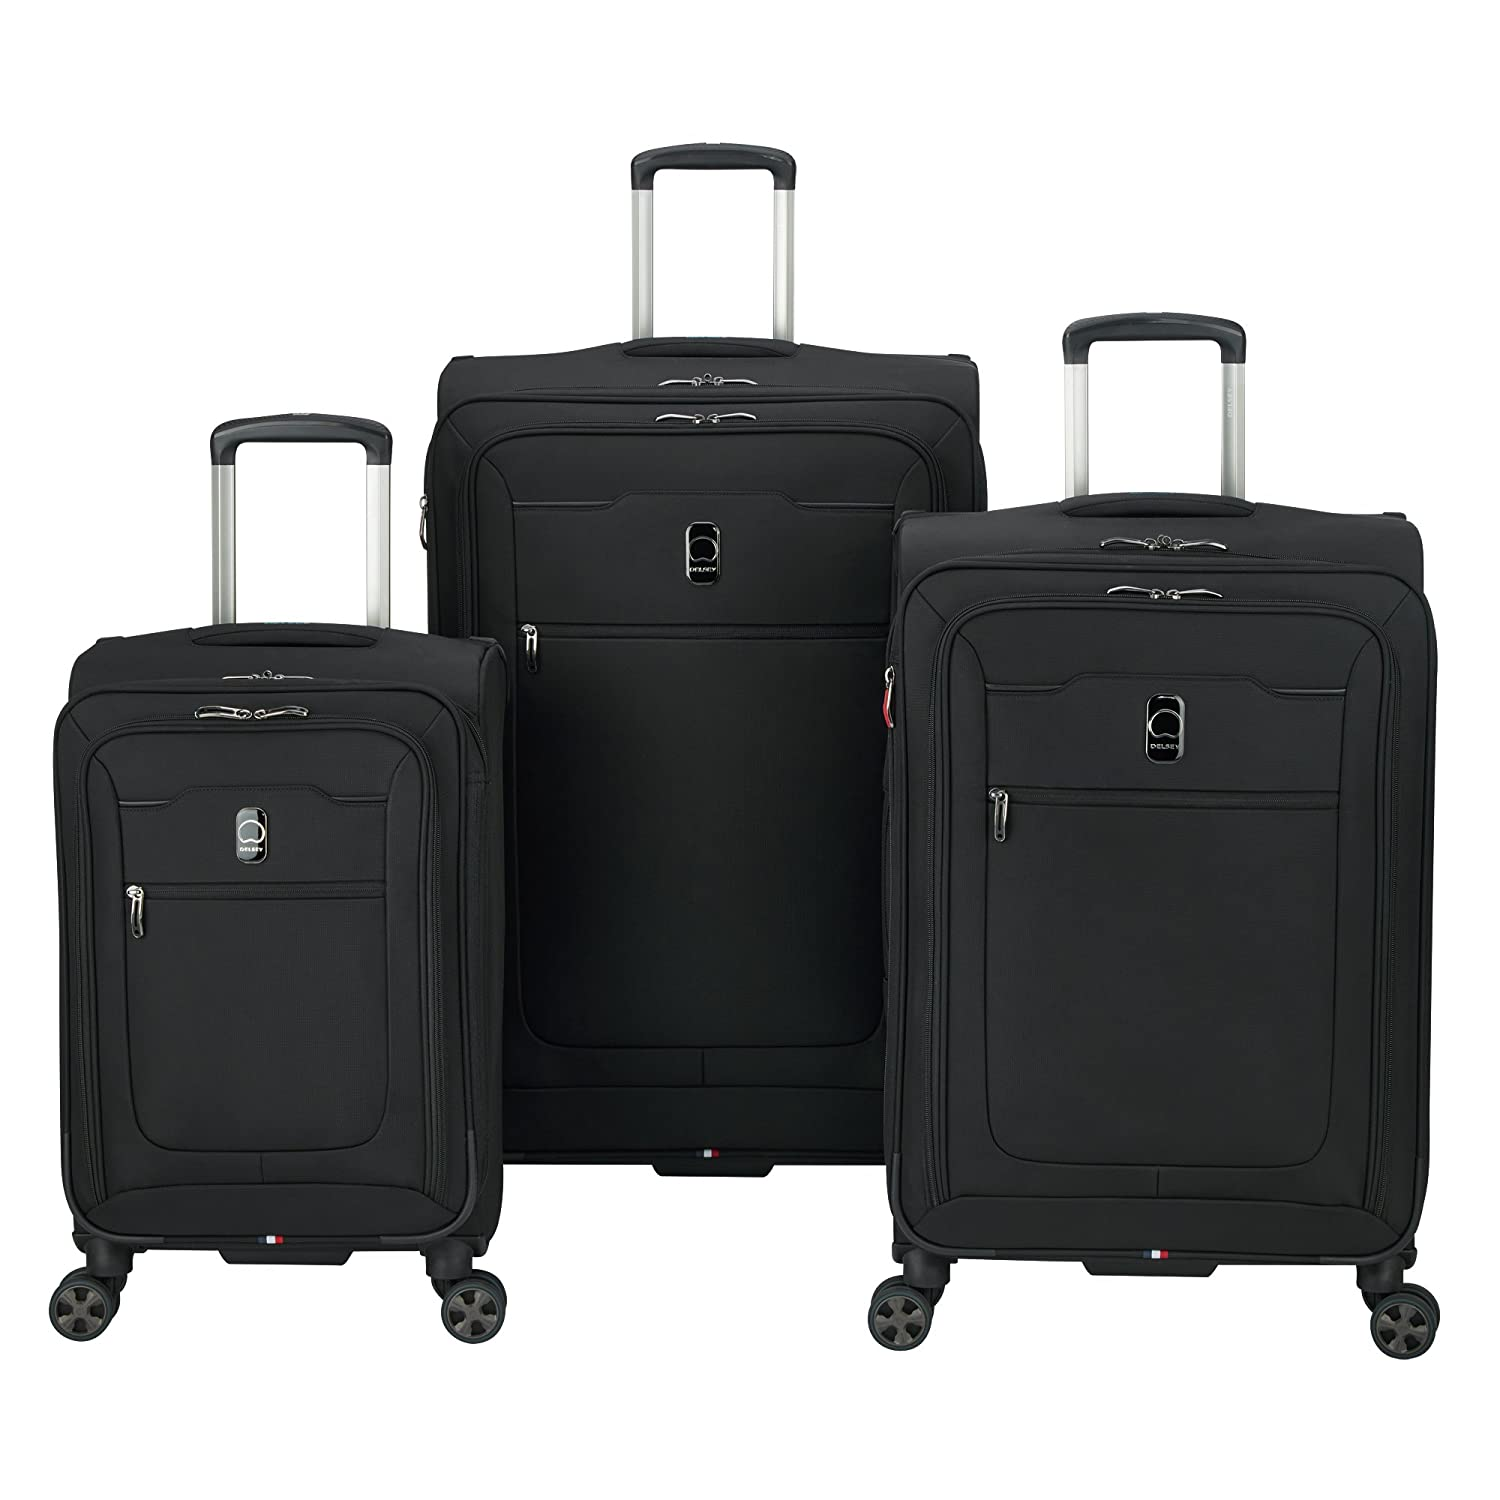 010b7dd2cd35 Delsey Luggage Hyperglide 3-Piece Nested Set